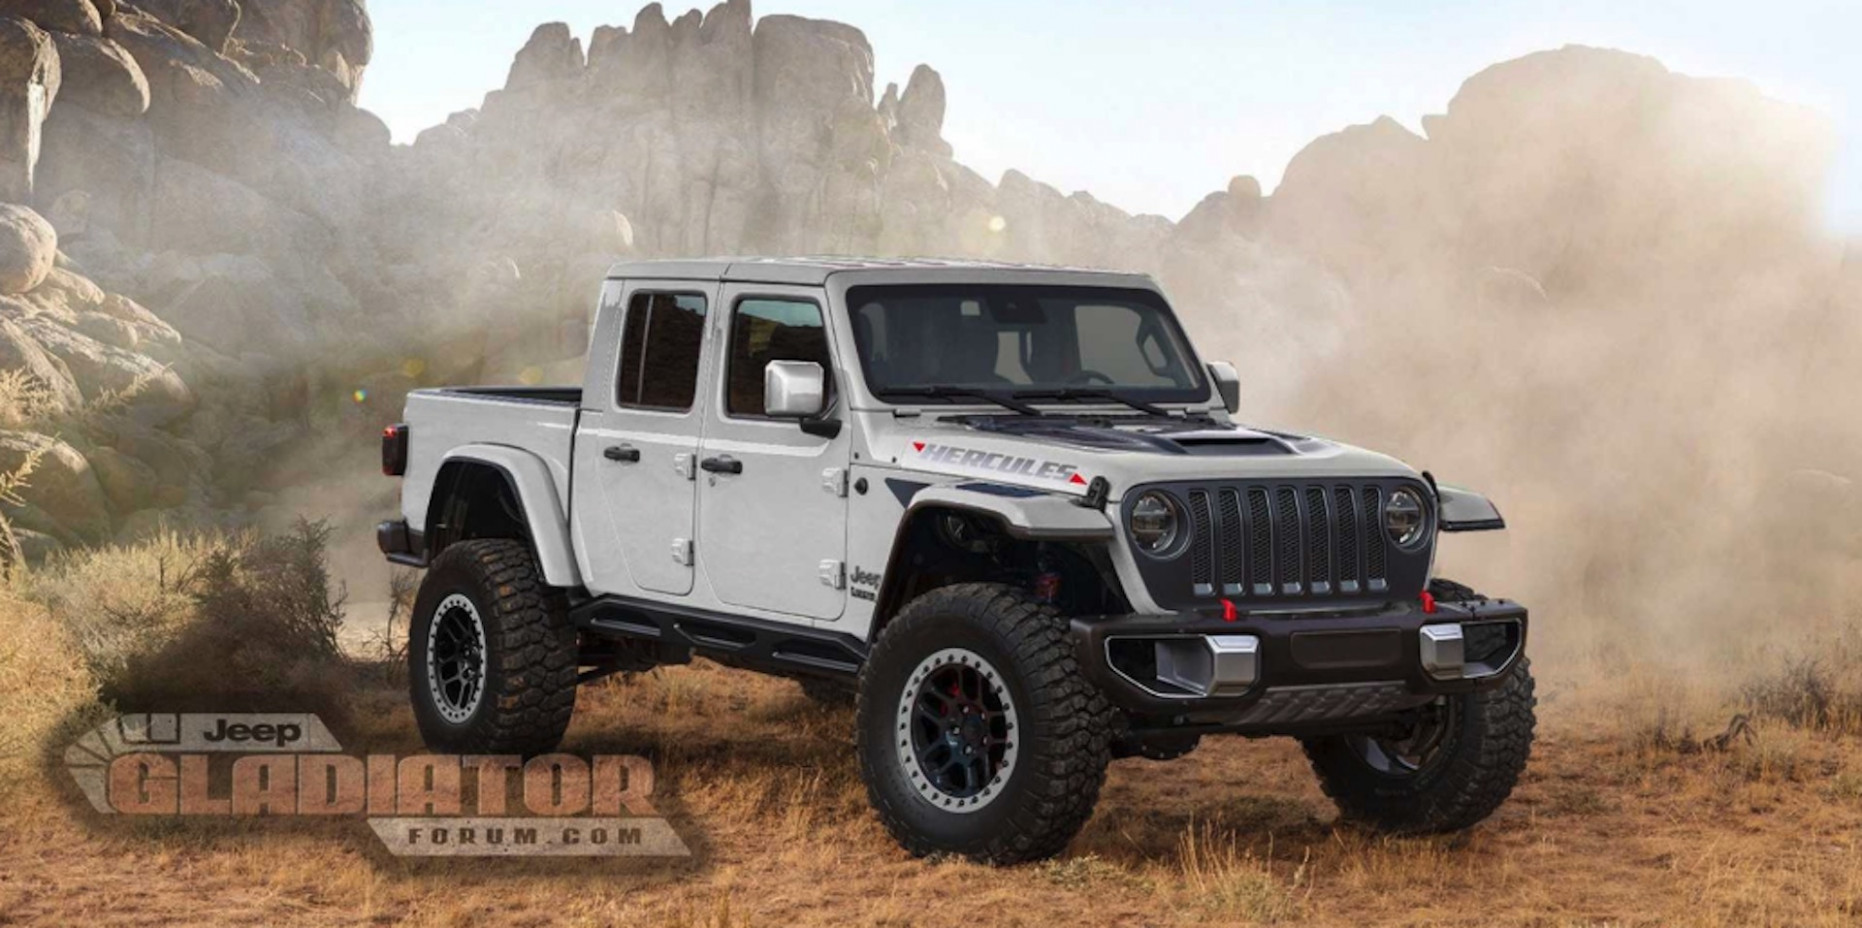 Rumors When Does The 2022 Jeep Gladiator Come Out